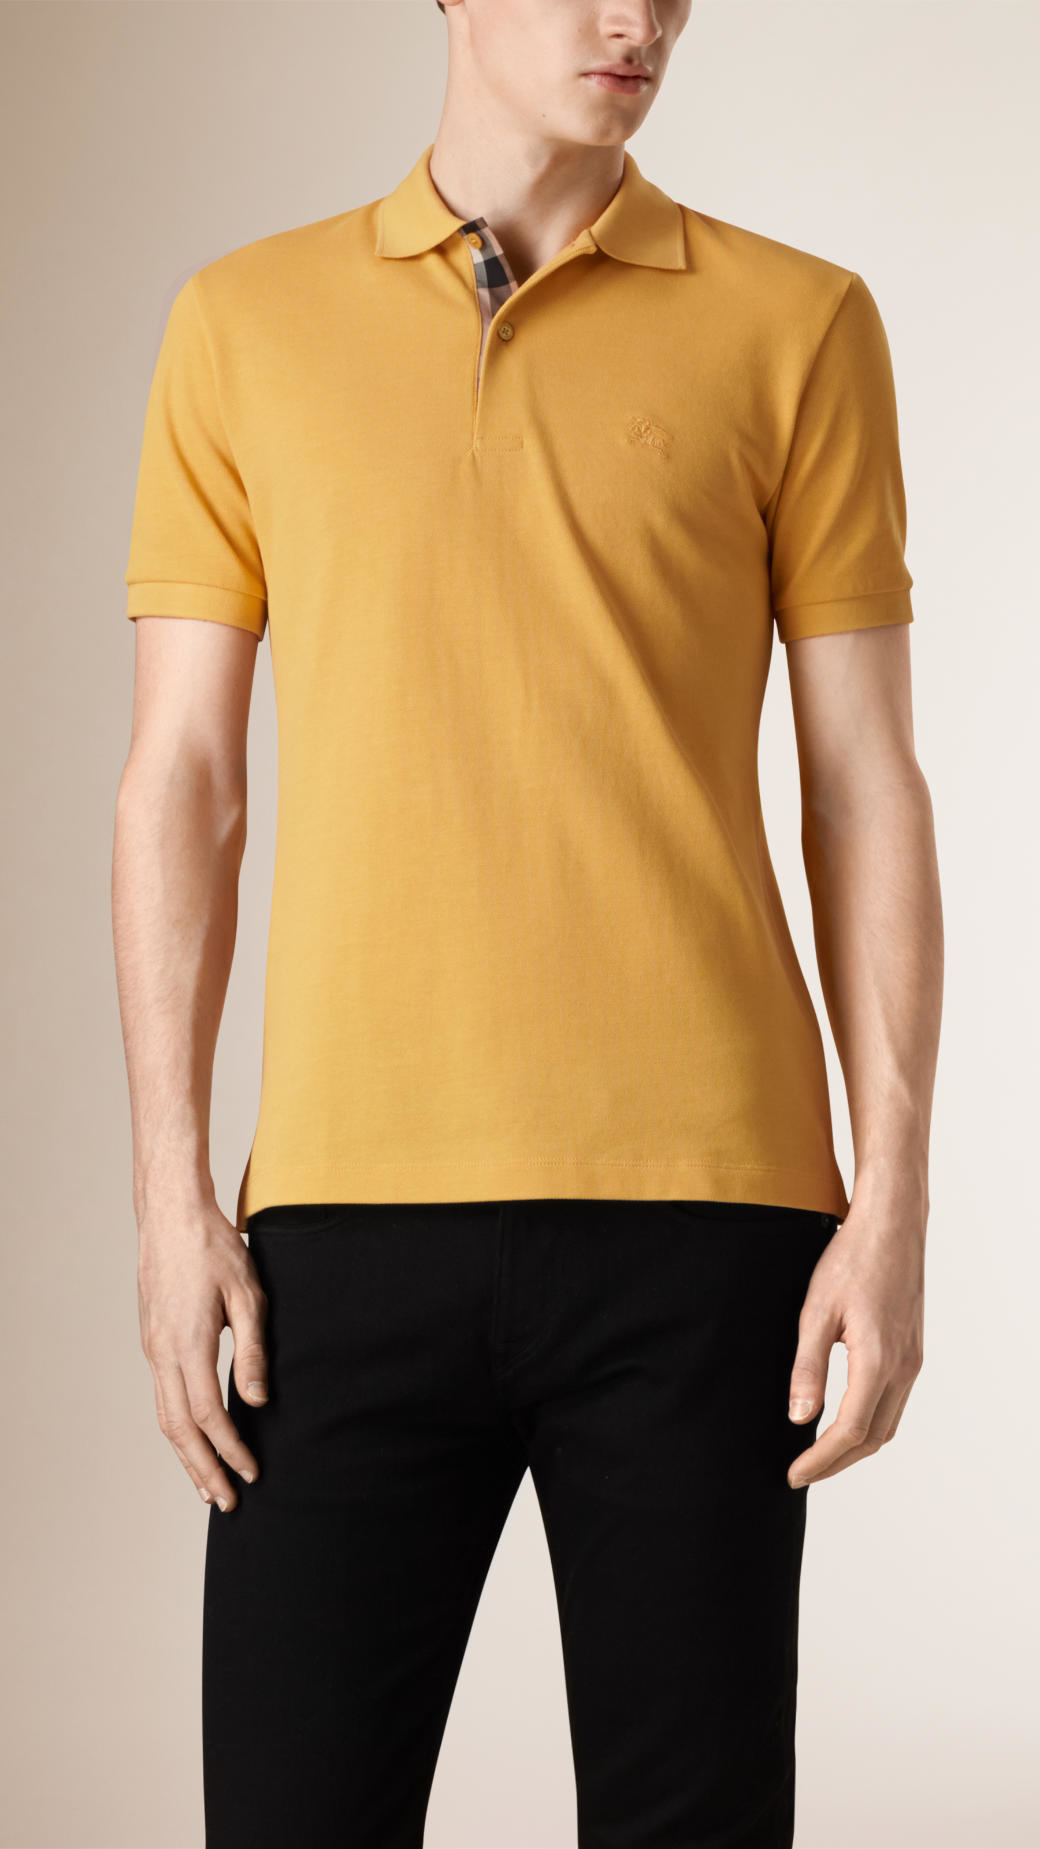 burberry polo outlet 9tp6  yellow burberry polo